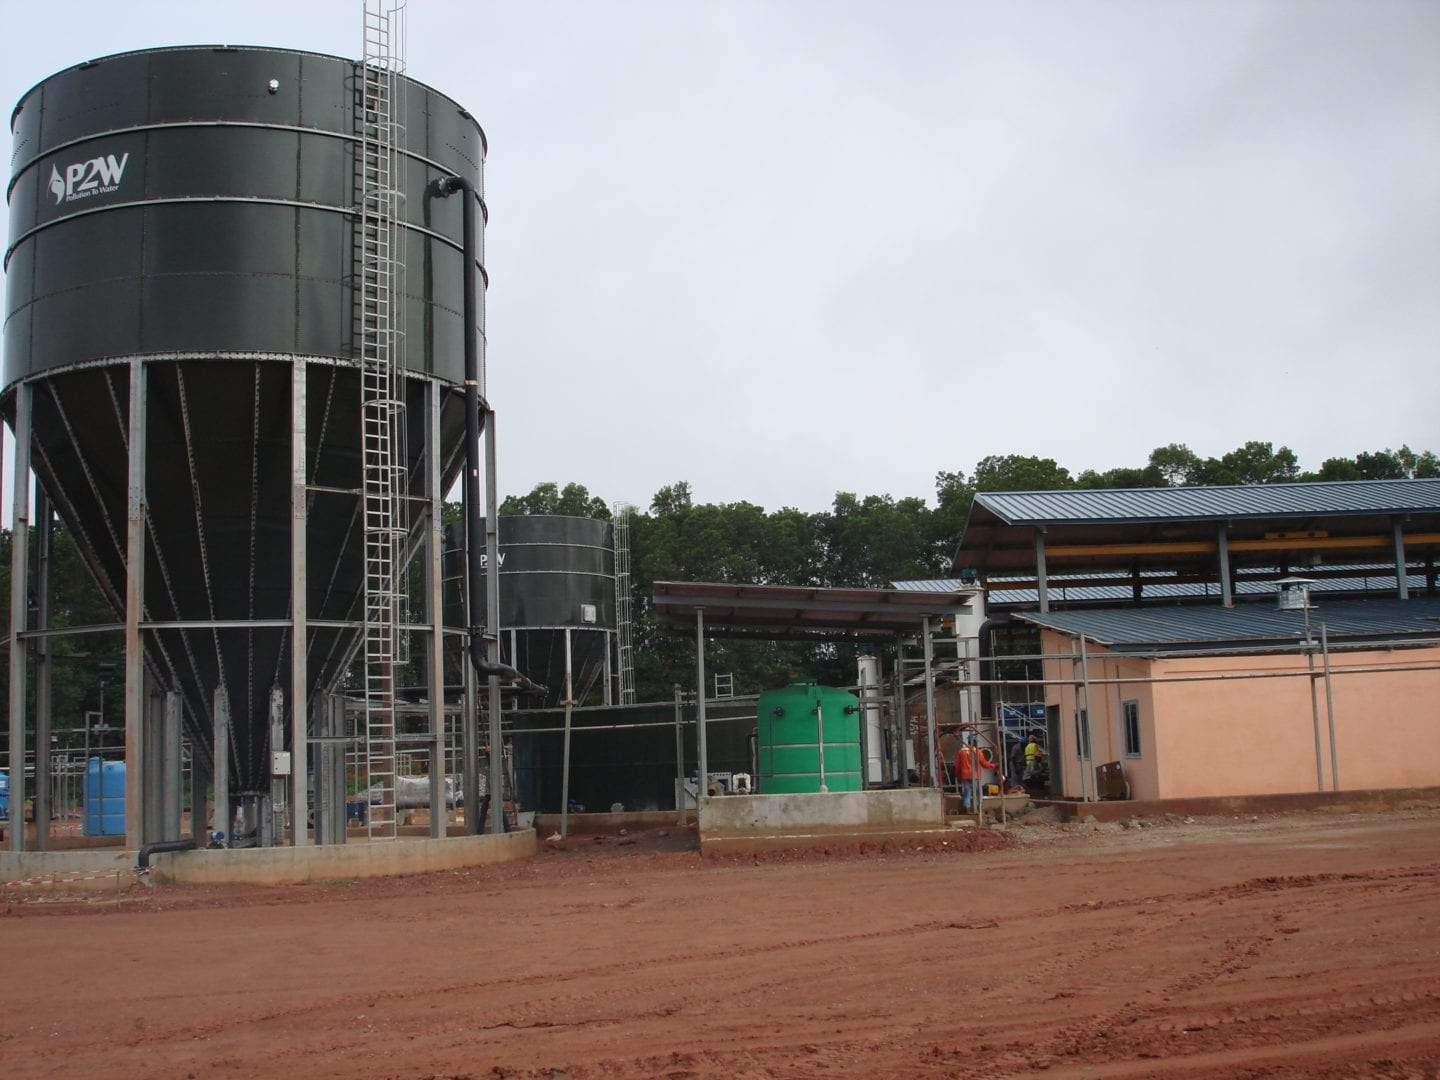 Doing away with conventional wastewater methods